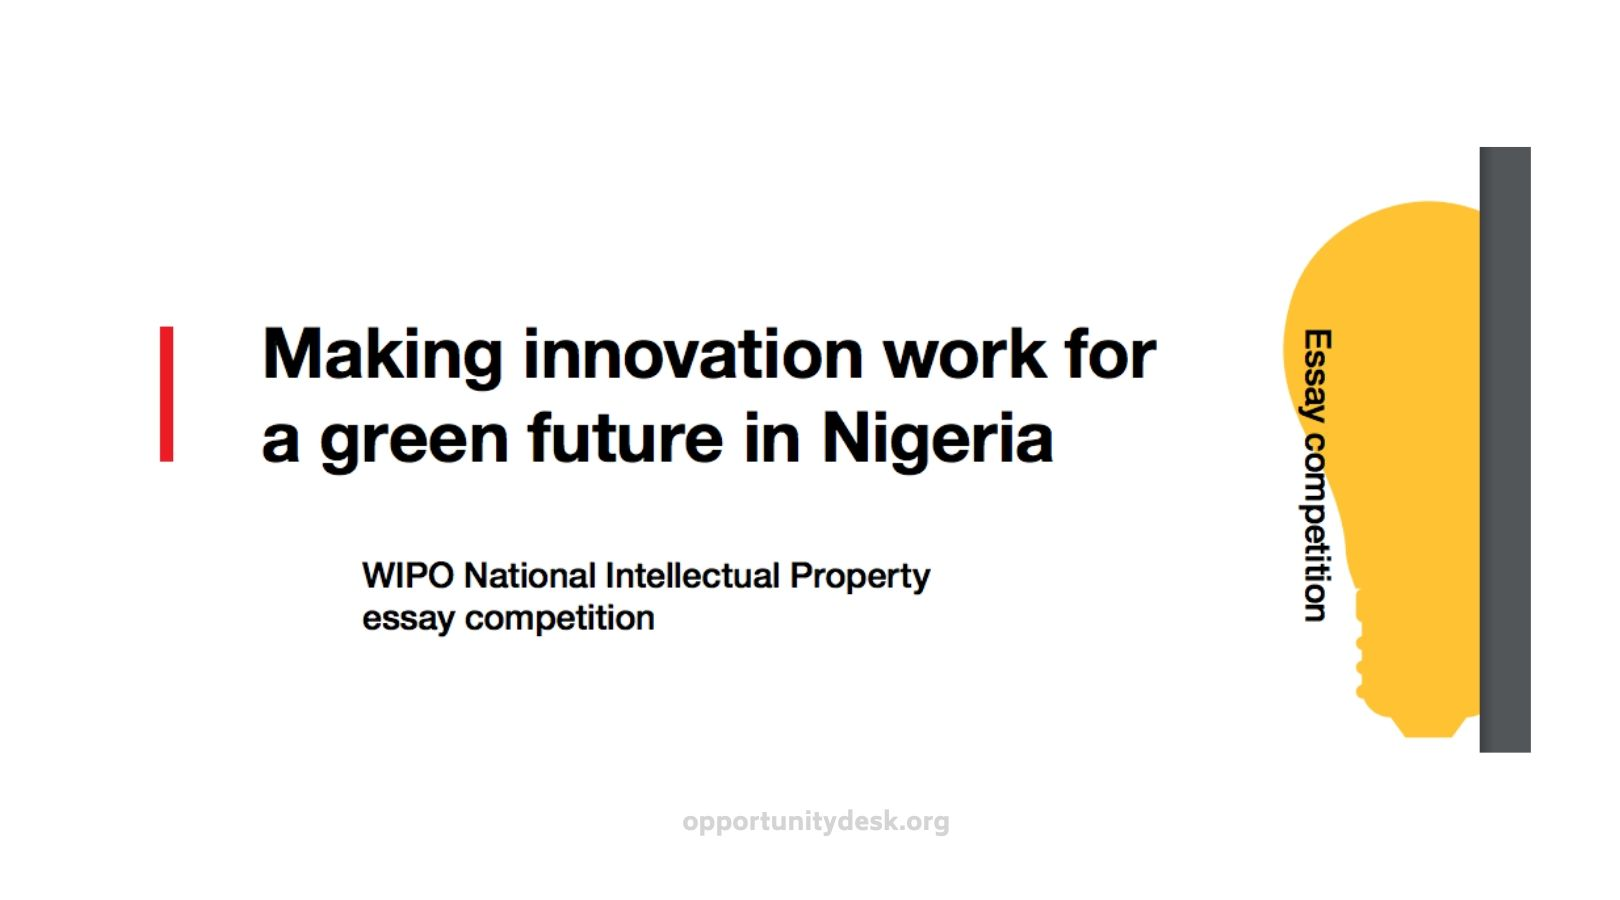 WIPO National Intellectual Property Essay Competition 2020 for Nigerian Students (Win a scholarship and more)